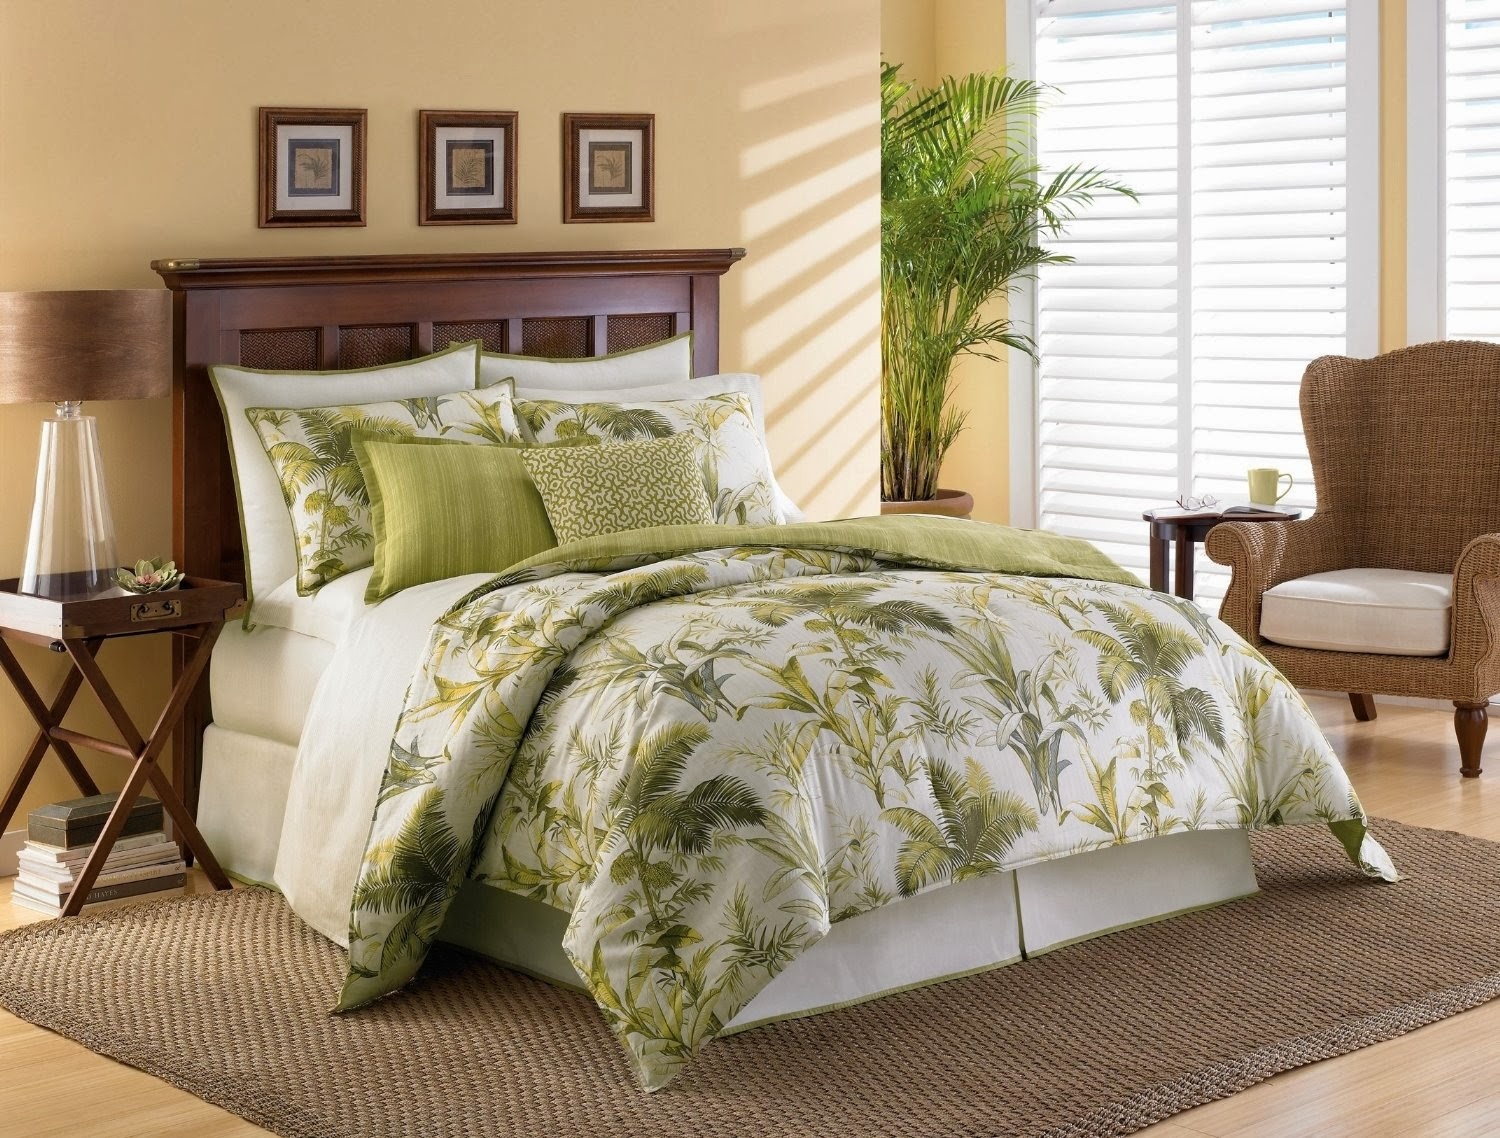 Tommy Bahama Island Botanical Comforter Set, Queen